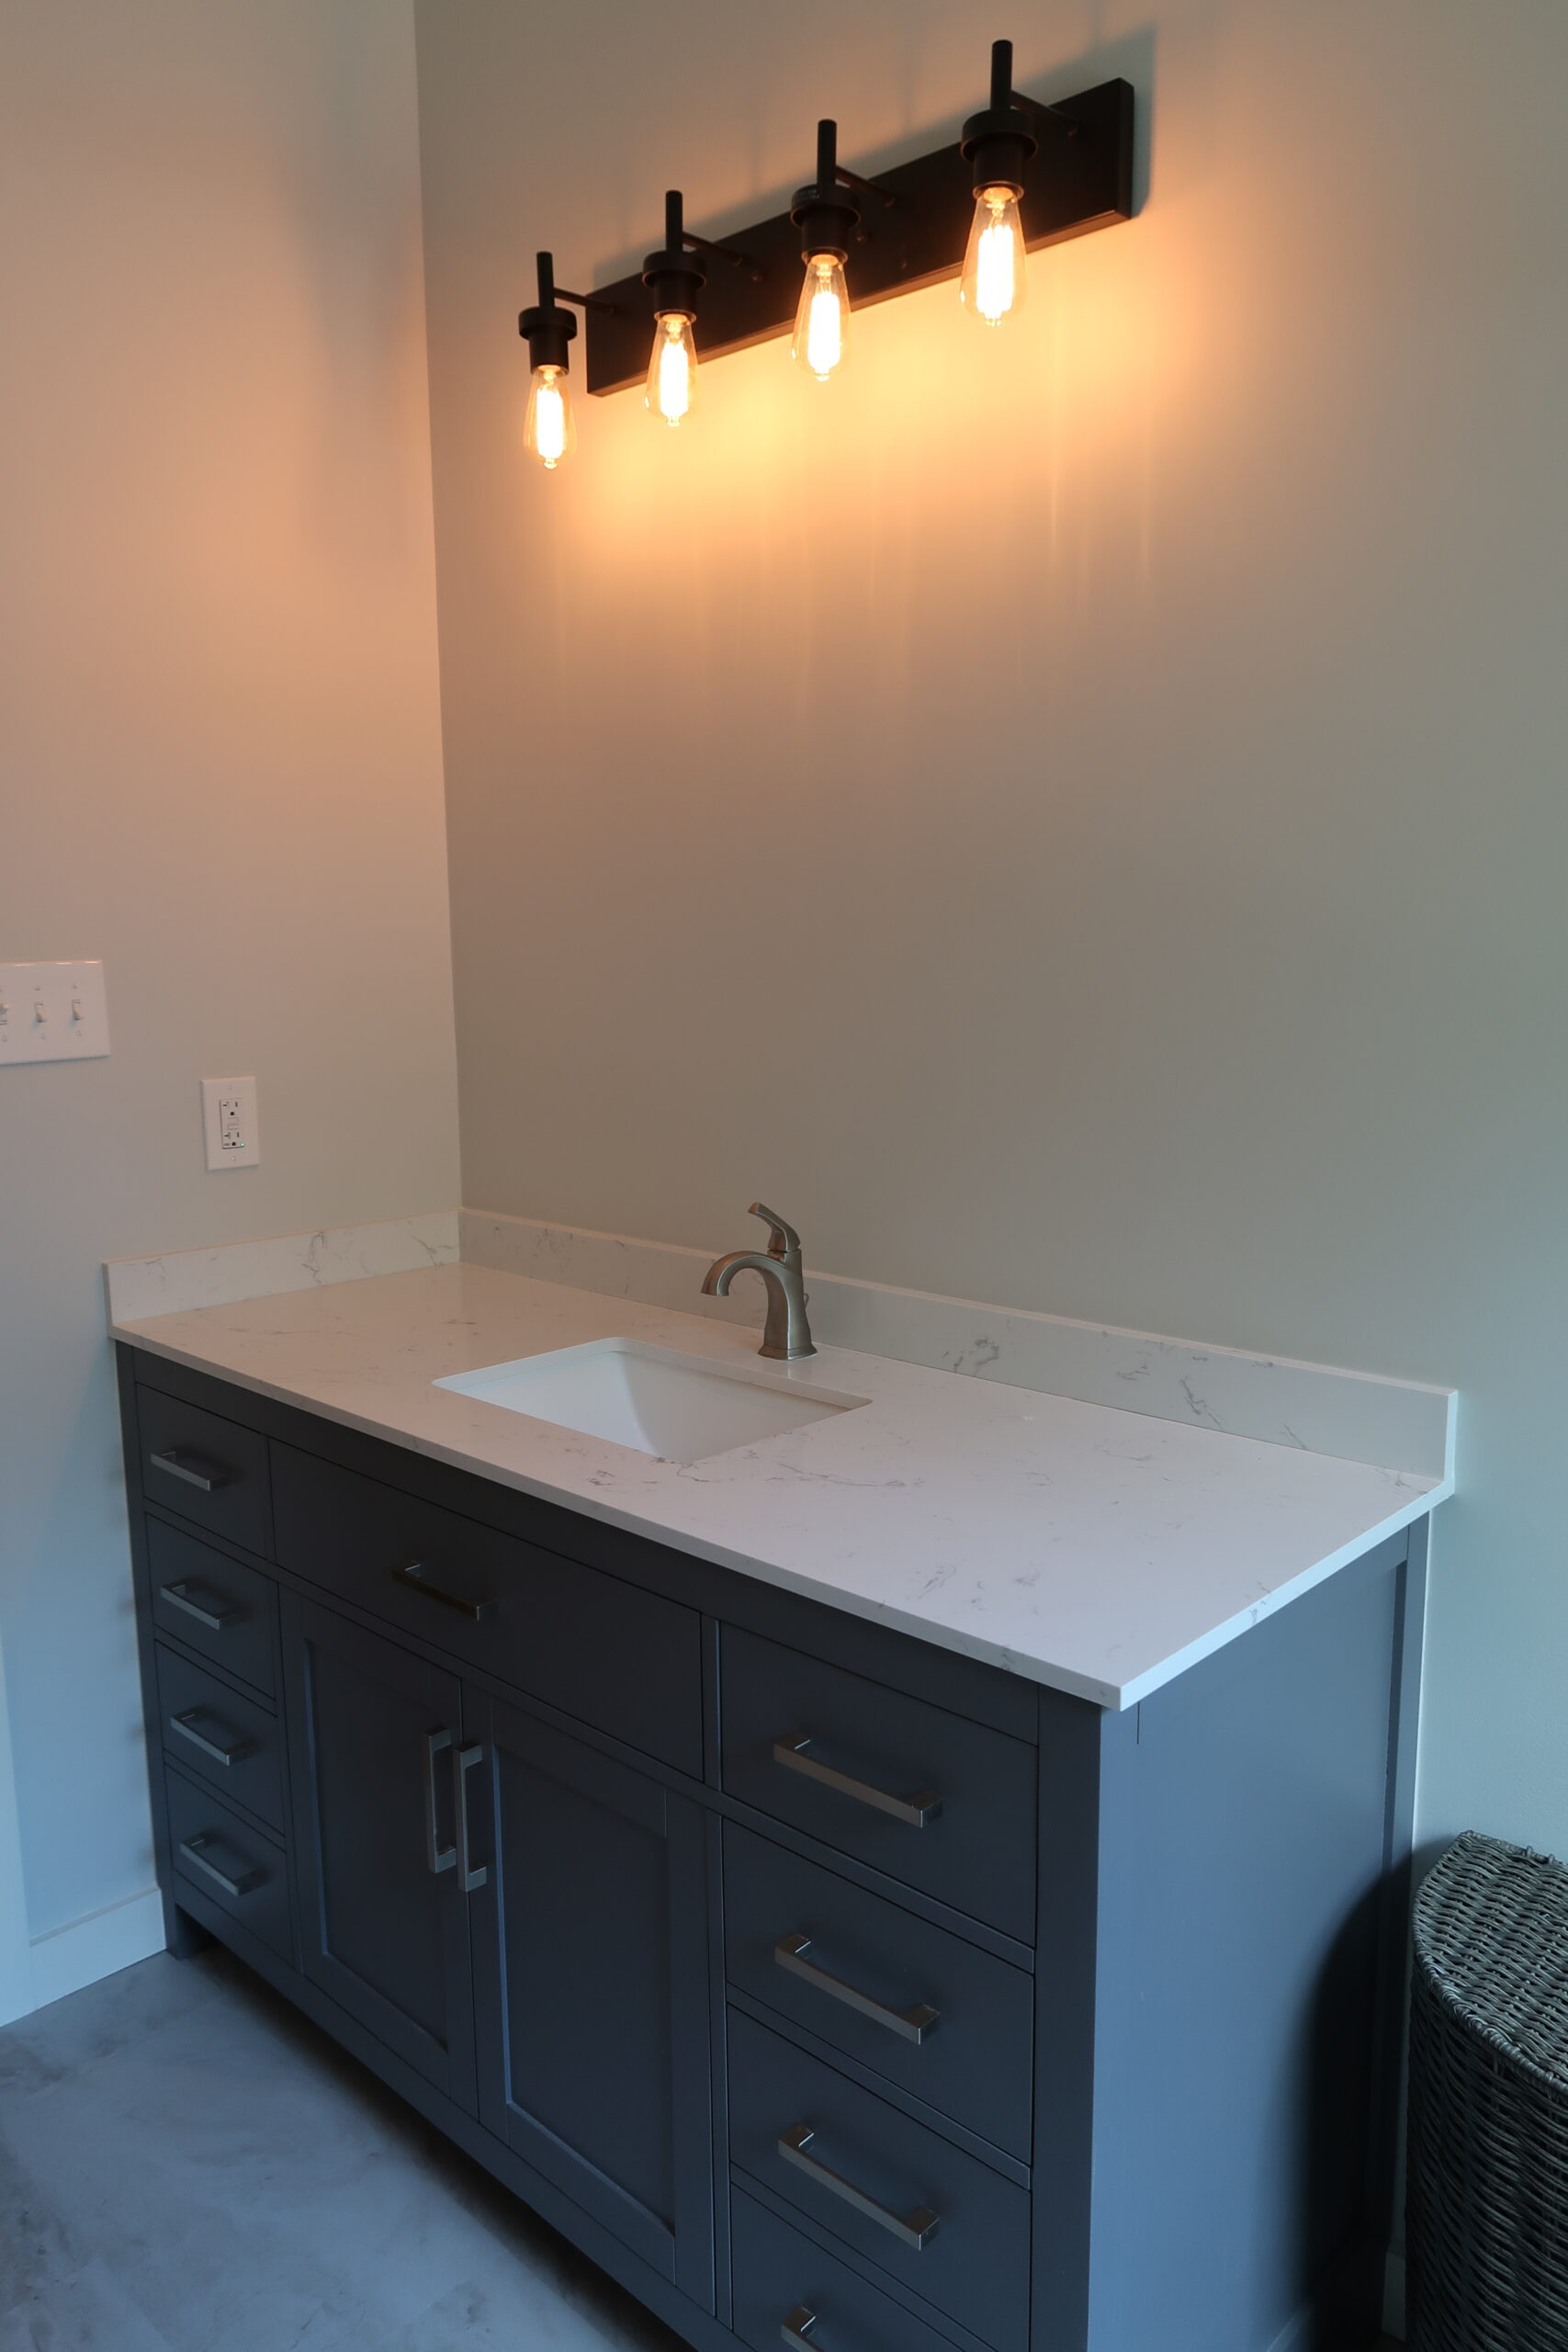 Stainless Fixtures and Hardware With Black Metal Lighting